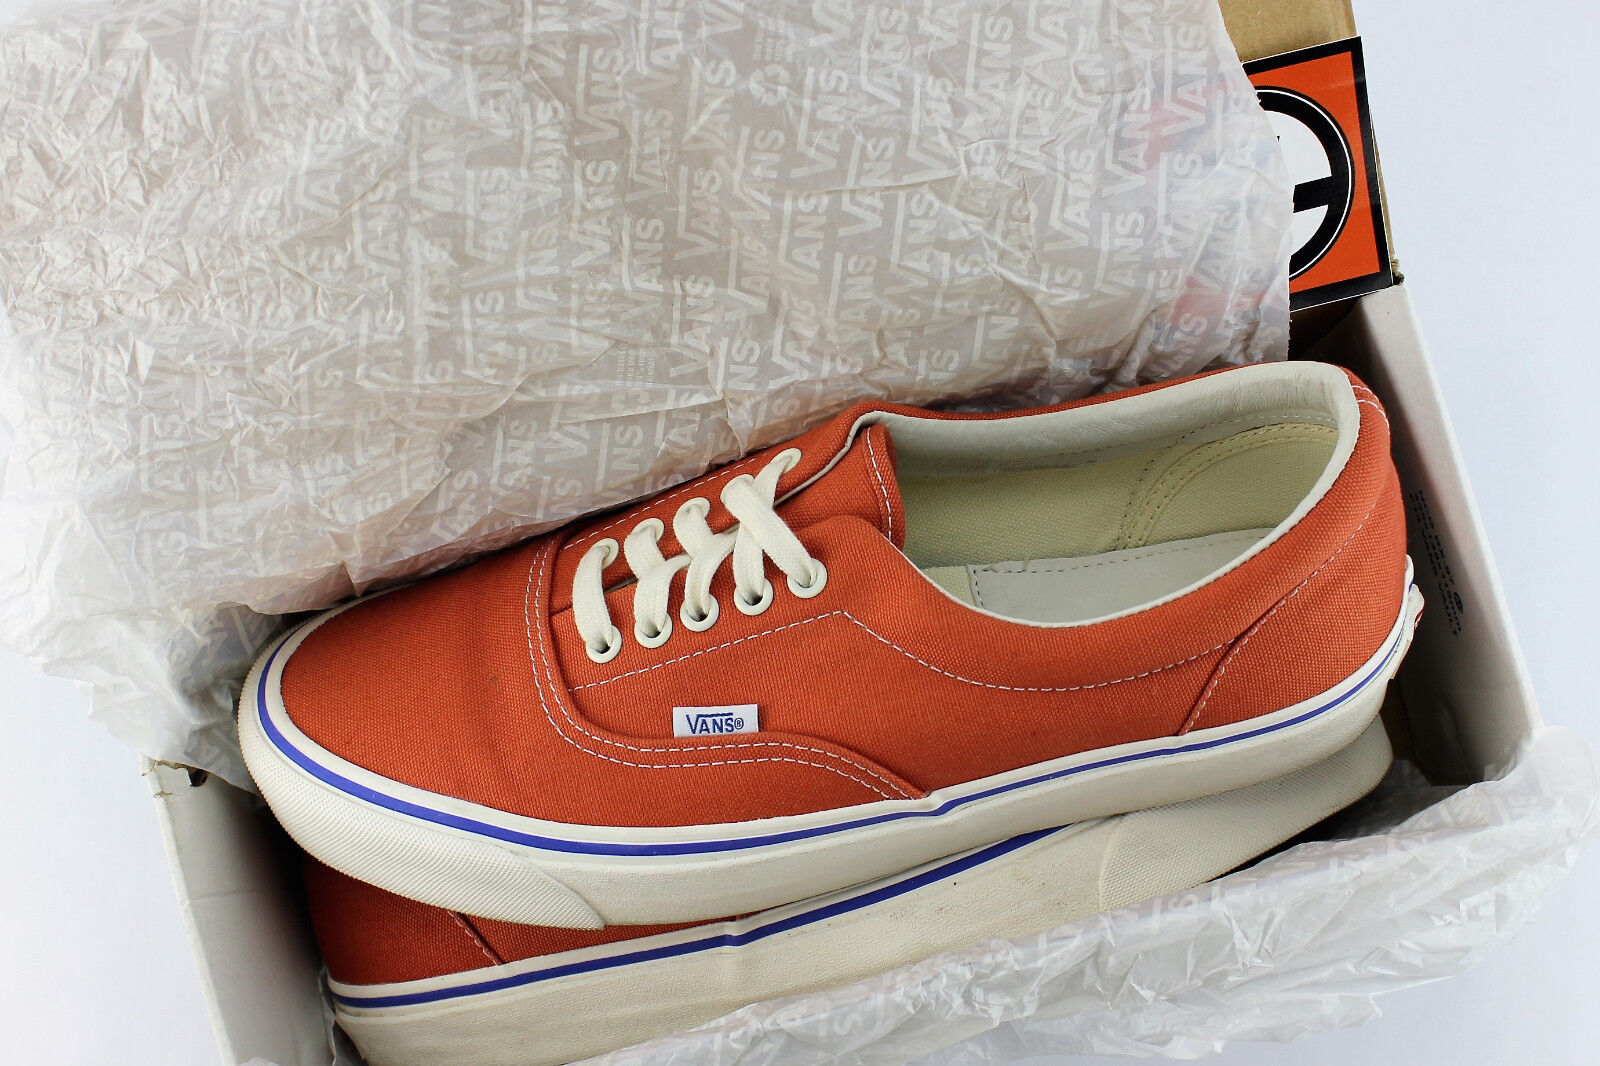 Vans OG Era LX Canvas Mecca Orange Größe 11.5 VN 0OZDF9D